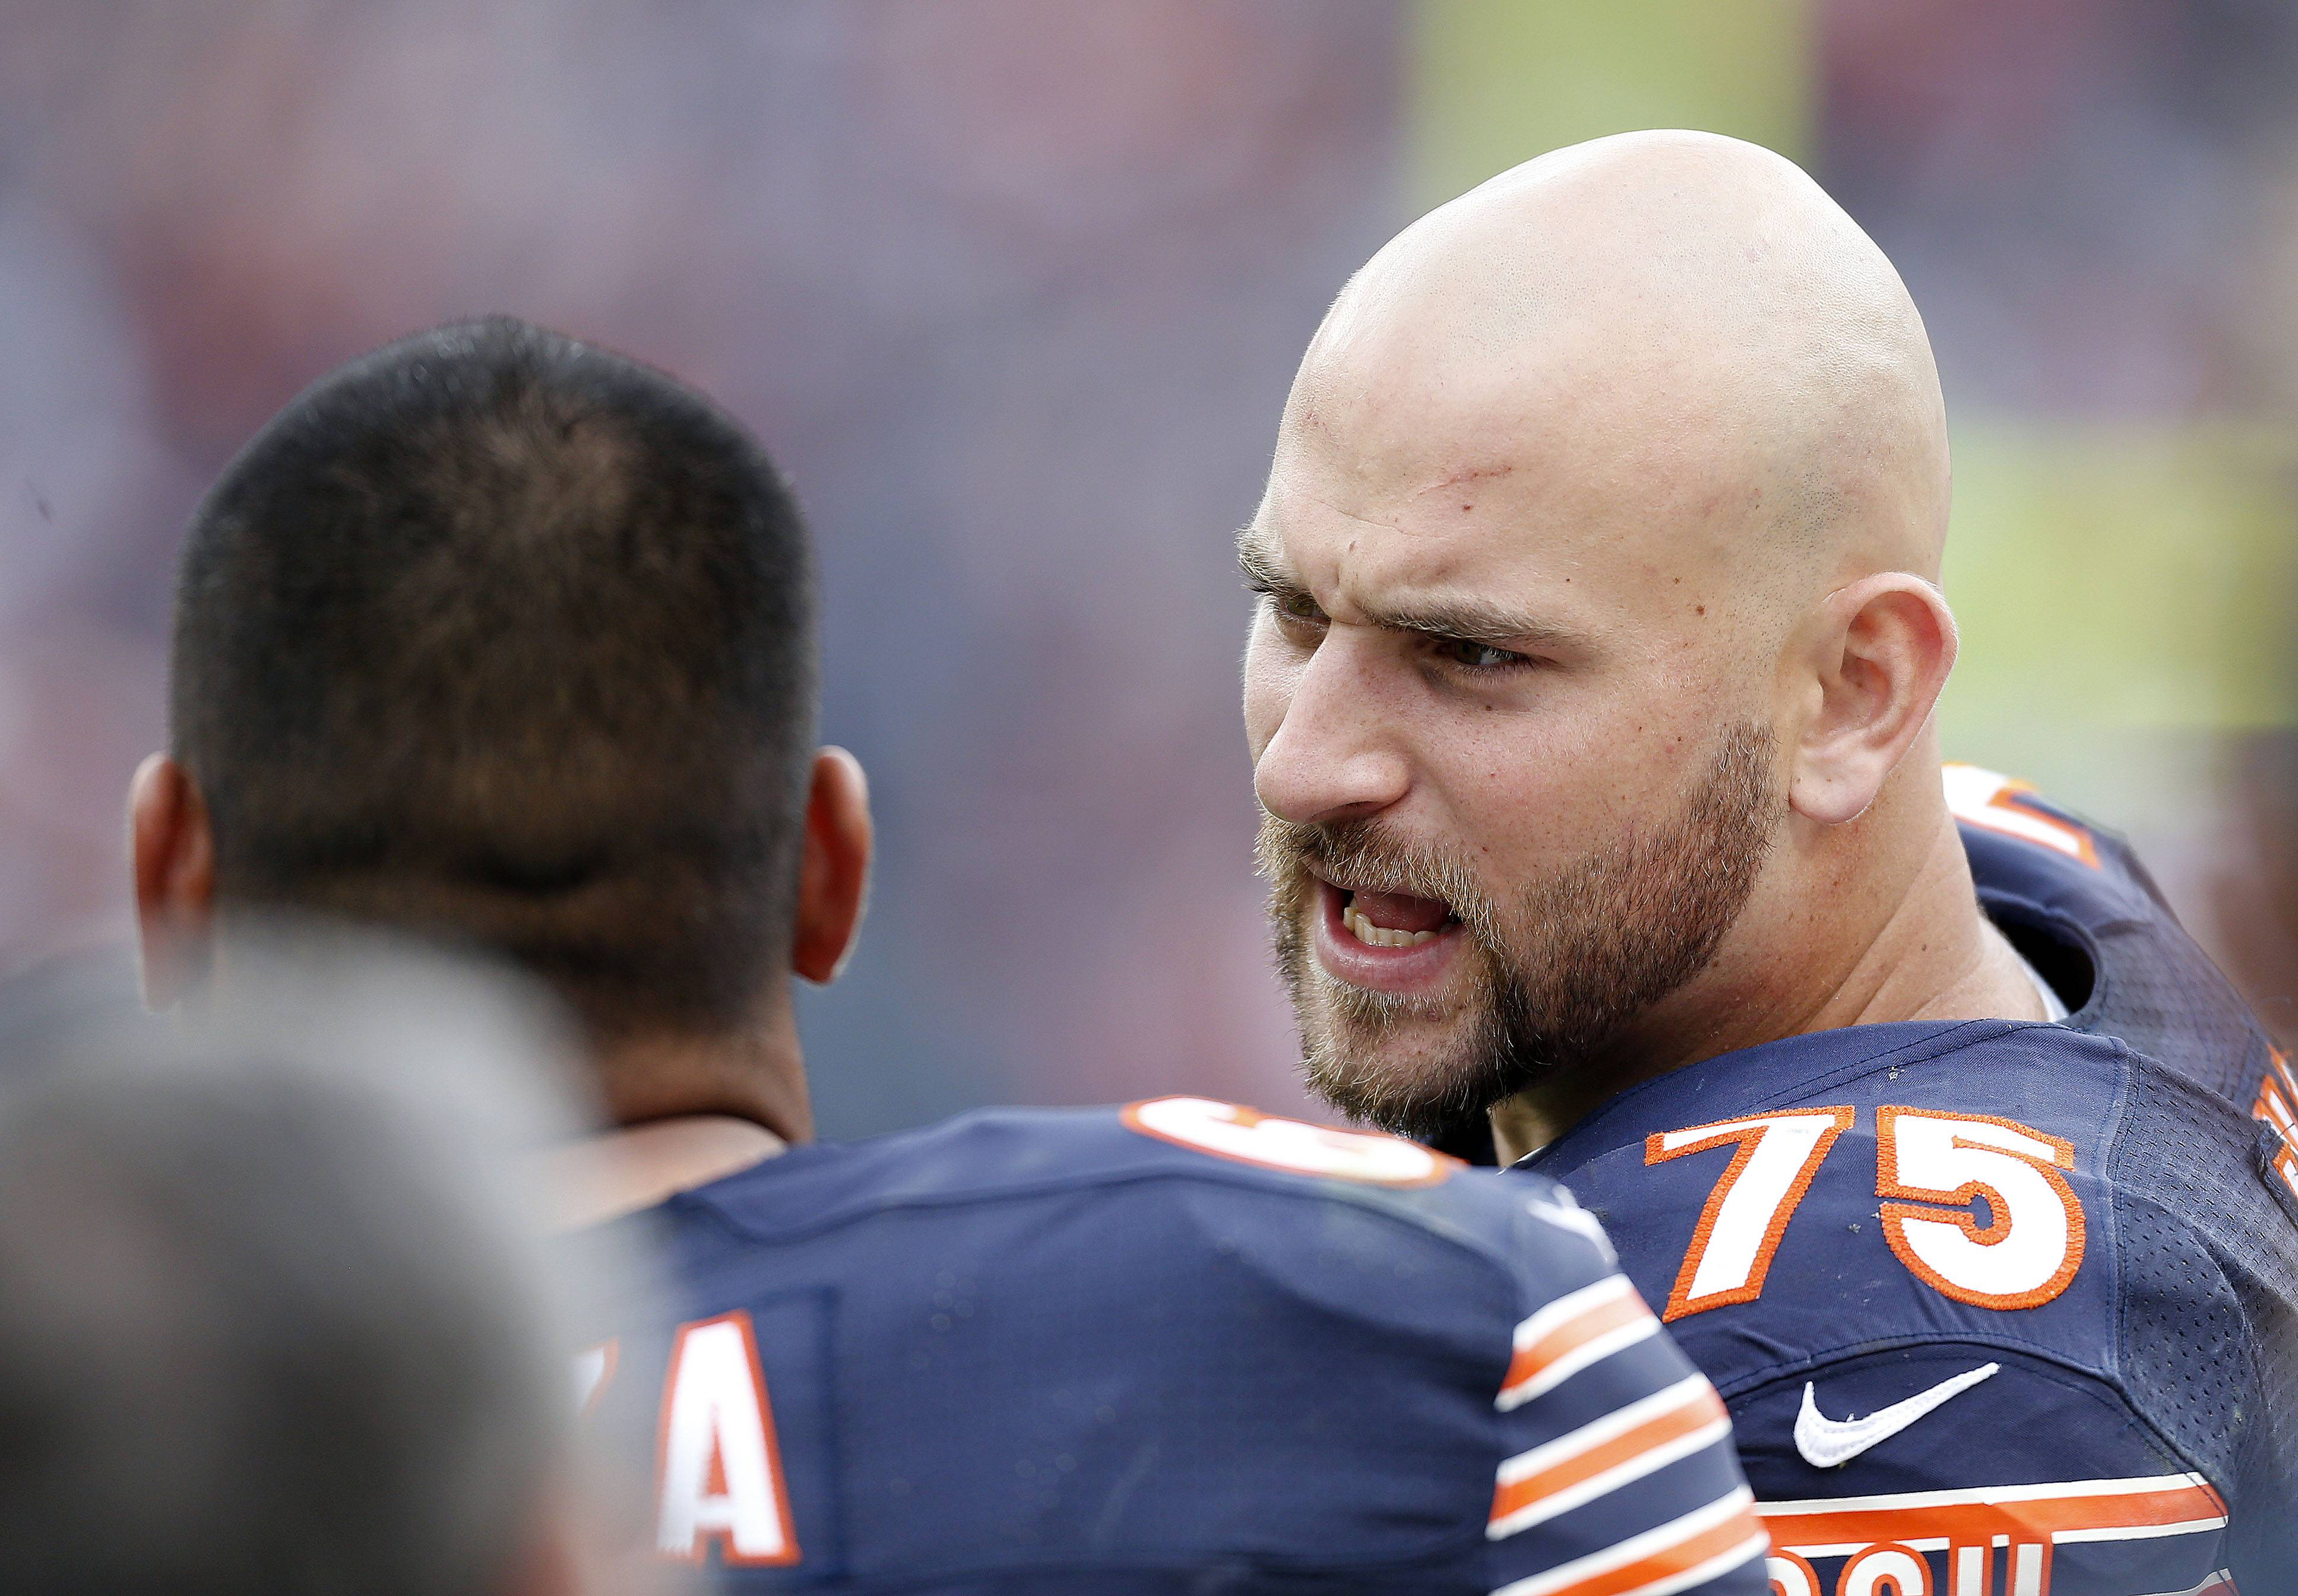 Bears offensive guard Kyle Long (75) made tremendous progress during his rookie season, and Bears coaches say he has shown great growth during the off season as well.